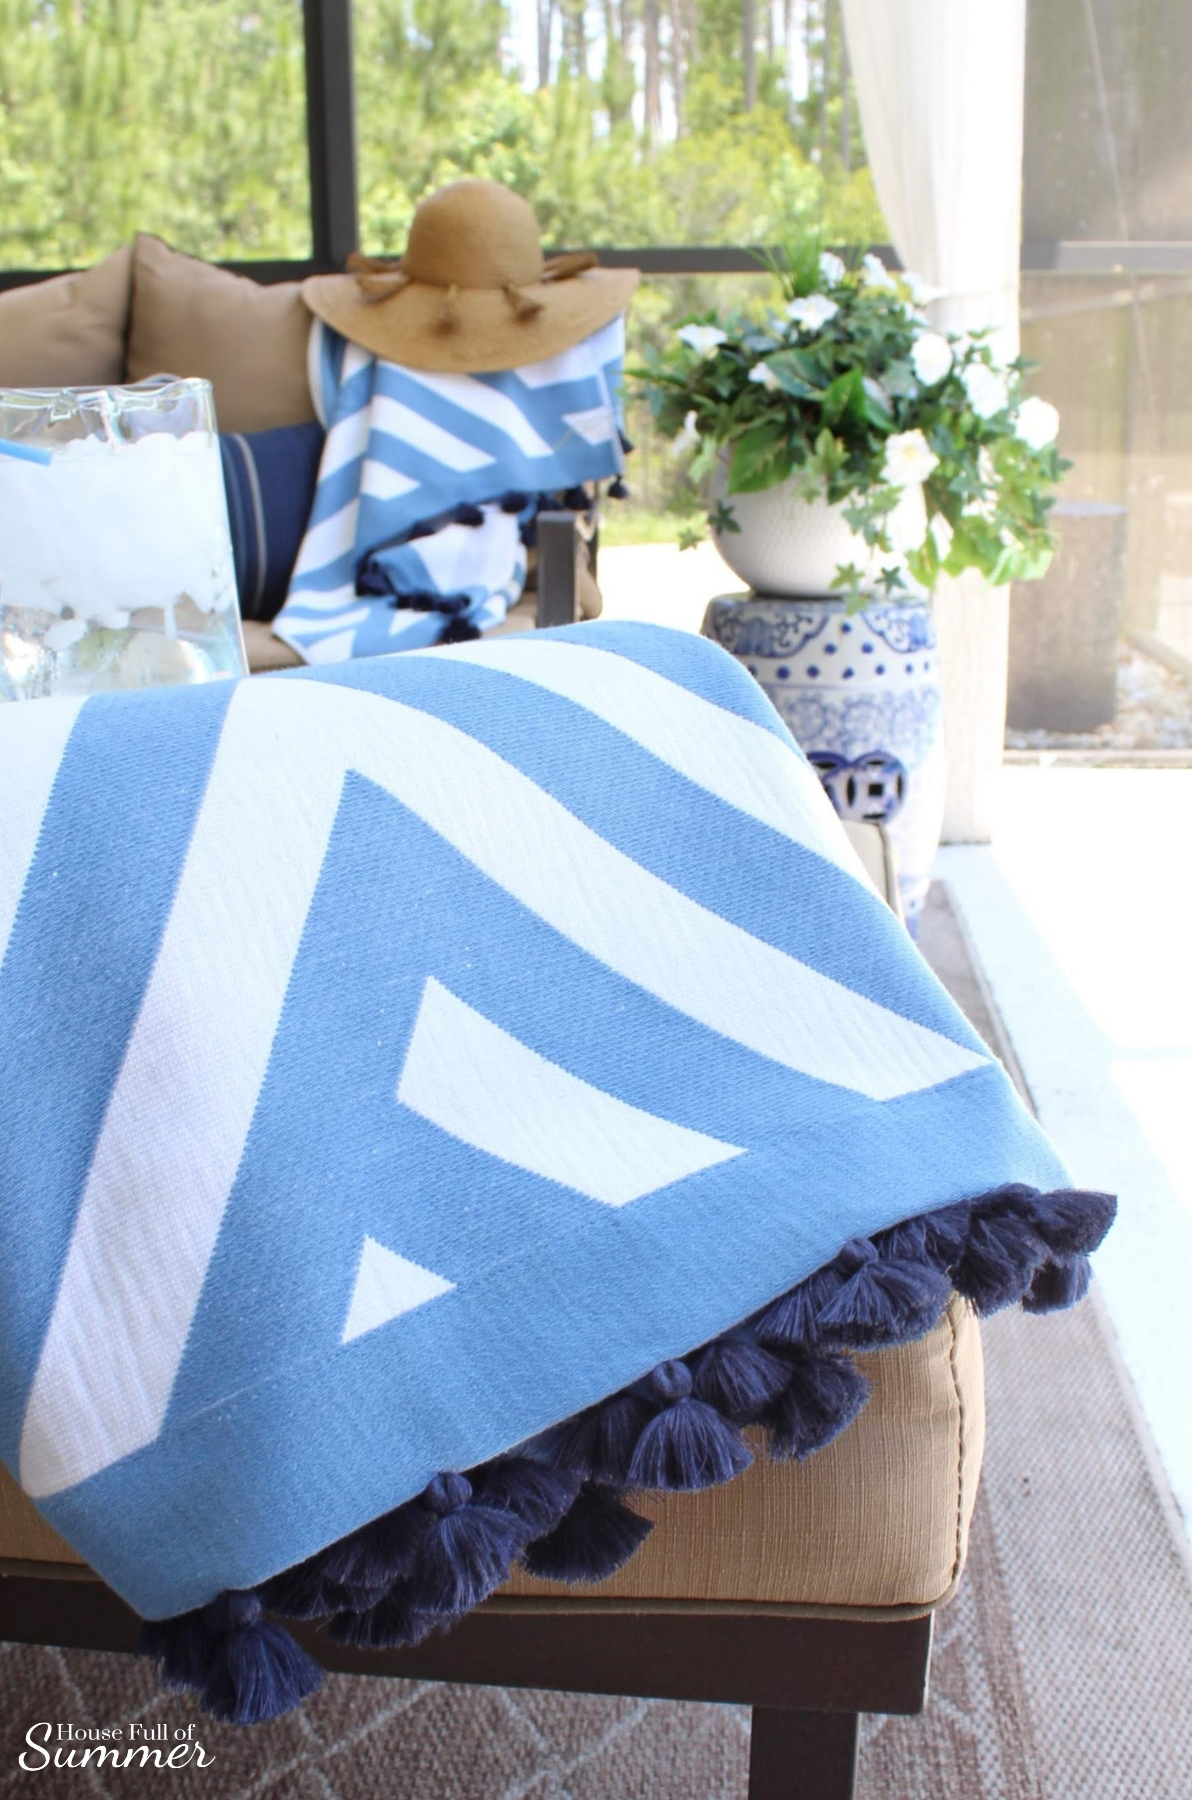 Blue & White Poolside Retreat | House Full of Summer - Serena & Lily beach towels, patio decor, outdoor living room, cozy patio, chinoiserie chic garden stool, coastal home decor, Florida home, lanai, beach accessories, Summer decor